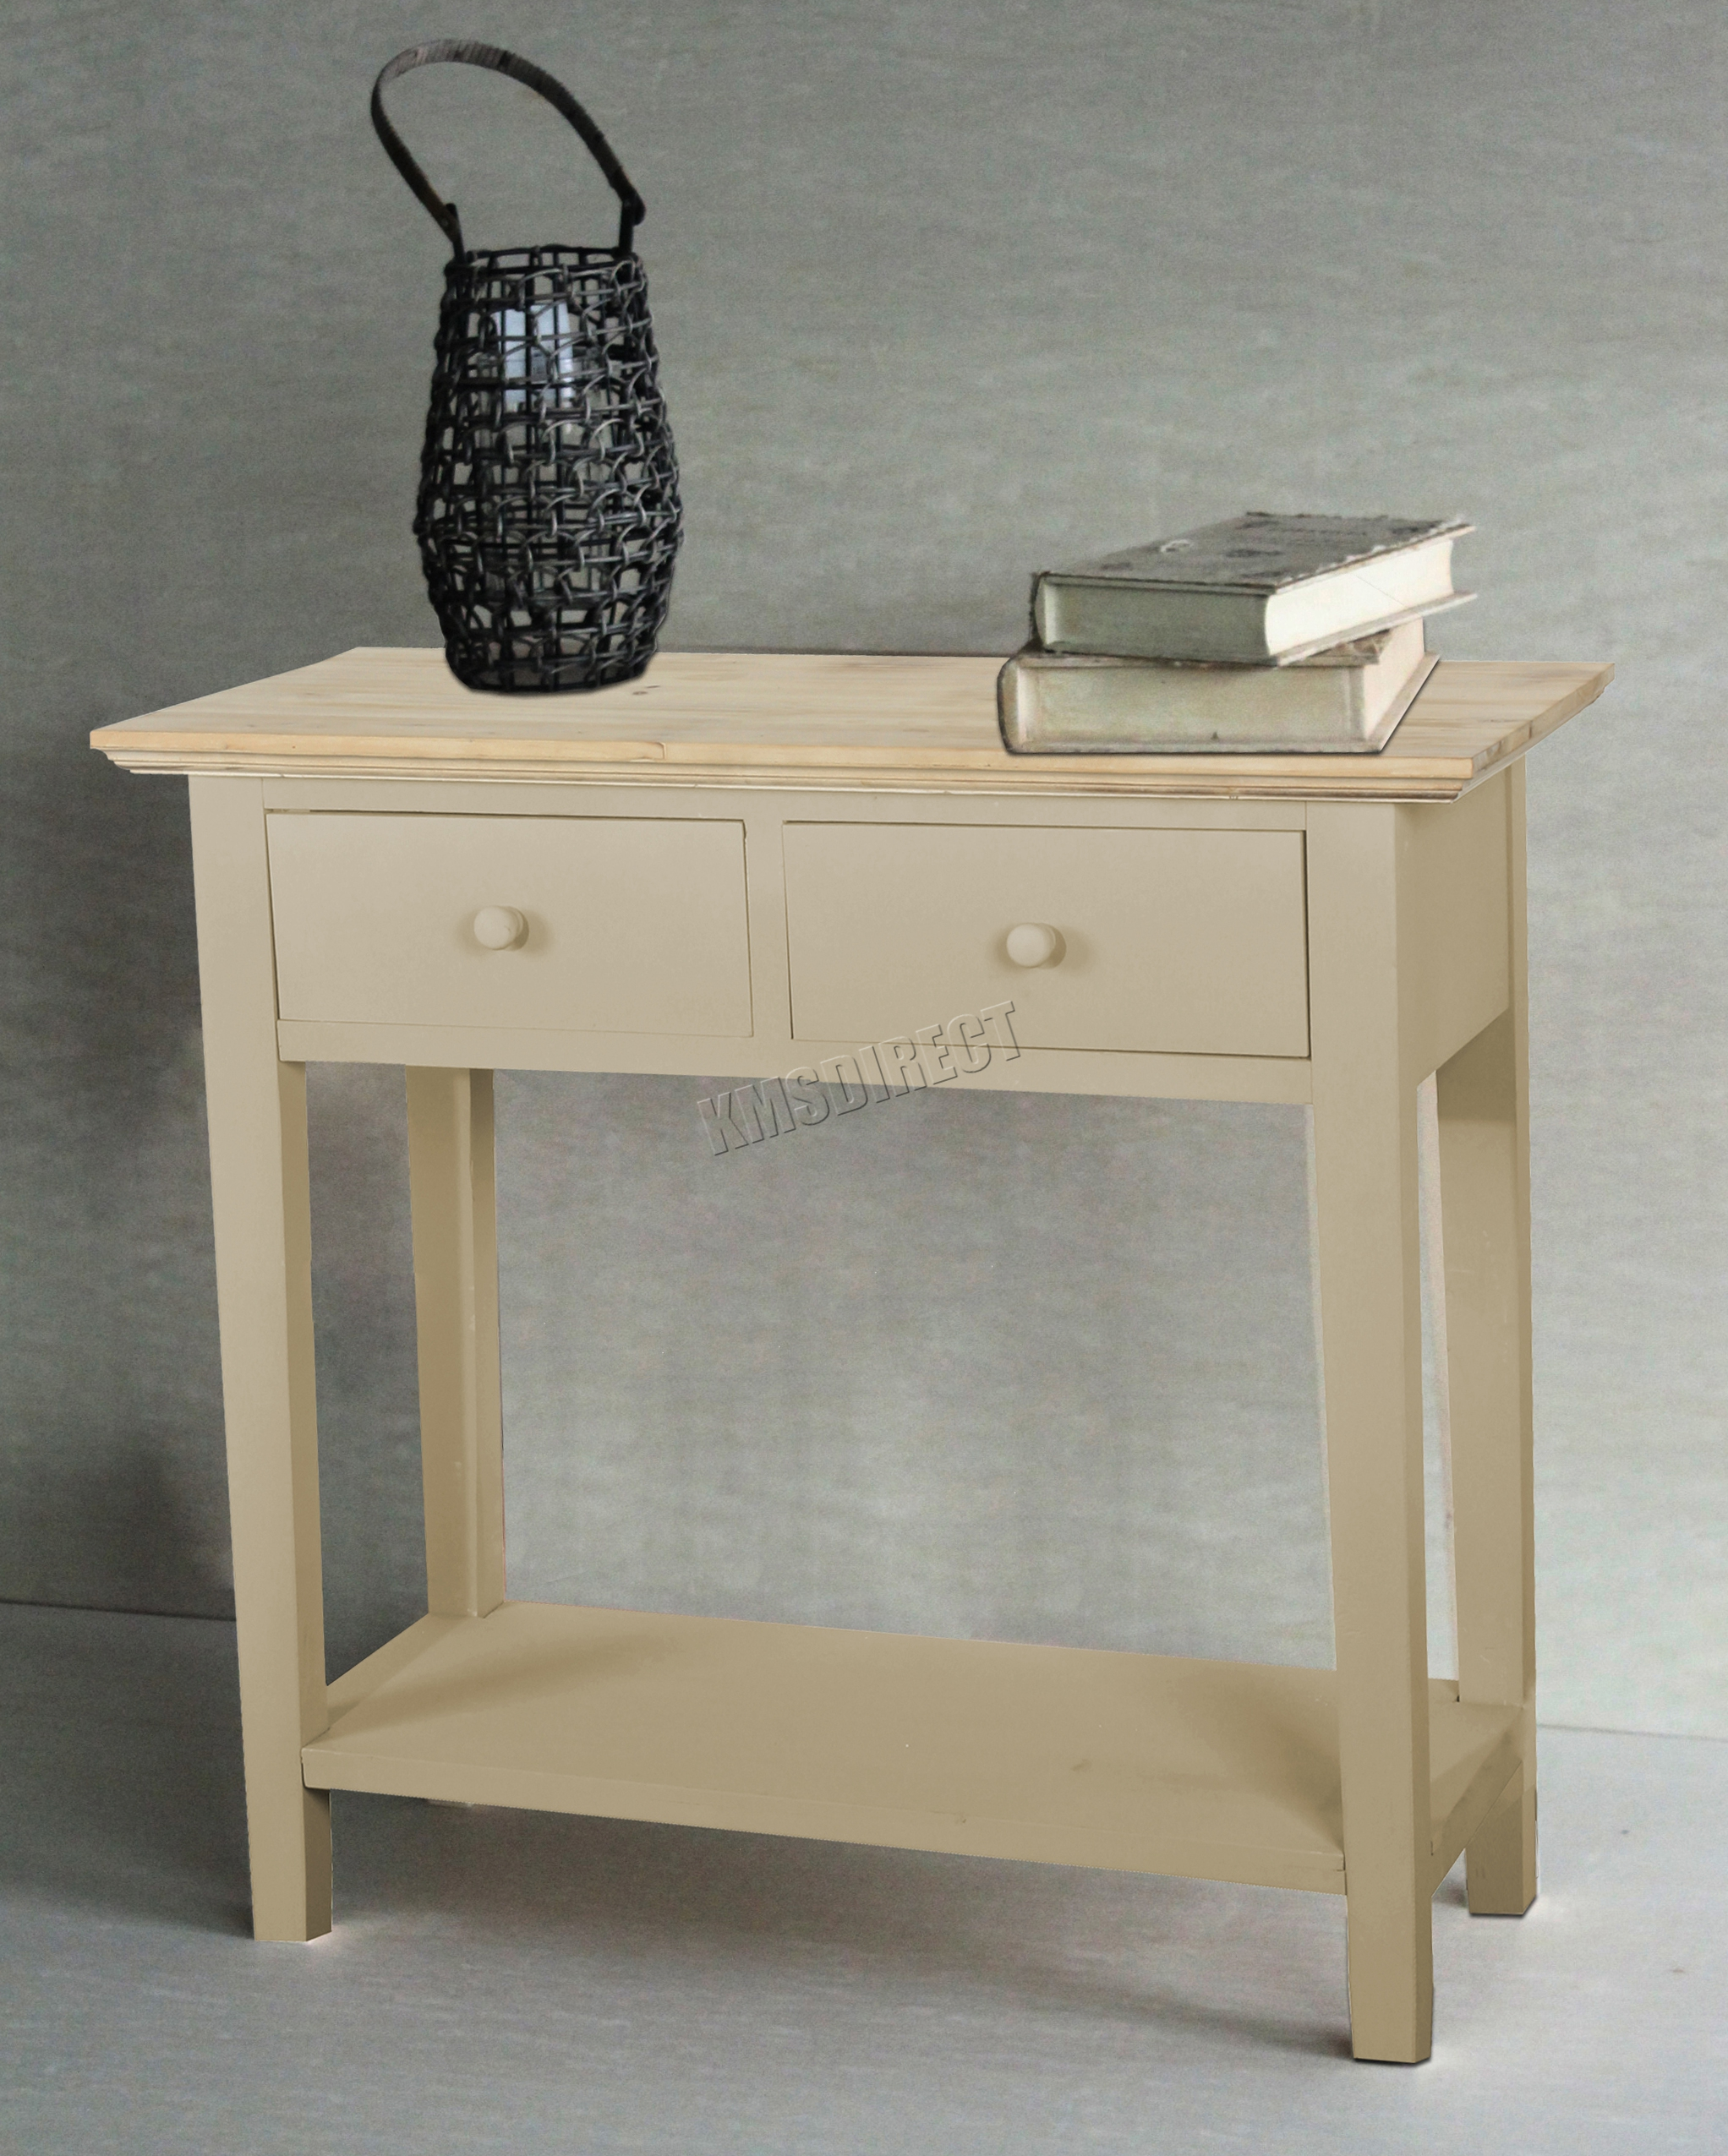 foxhunter table console 2 tiroirs bois couloir c t stockage hall cuisine ctw01 ebay. Black Bedroom Furniture Sets. Home Design Ideas